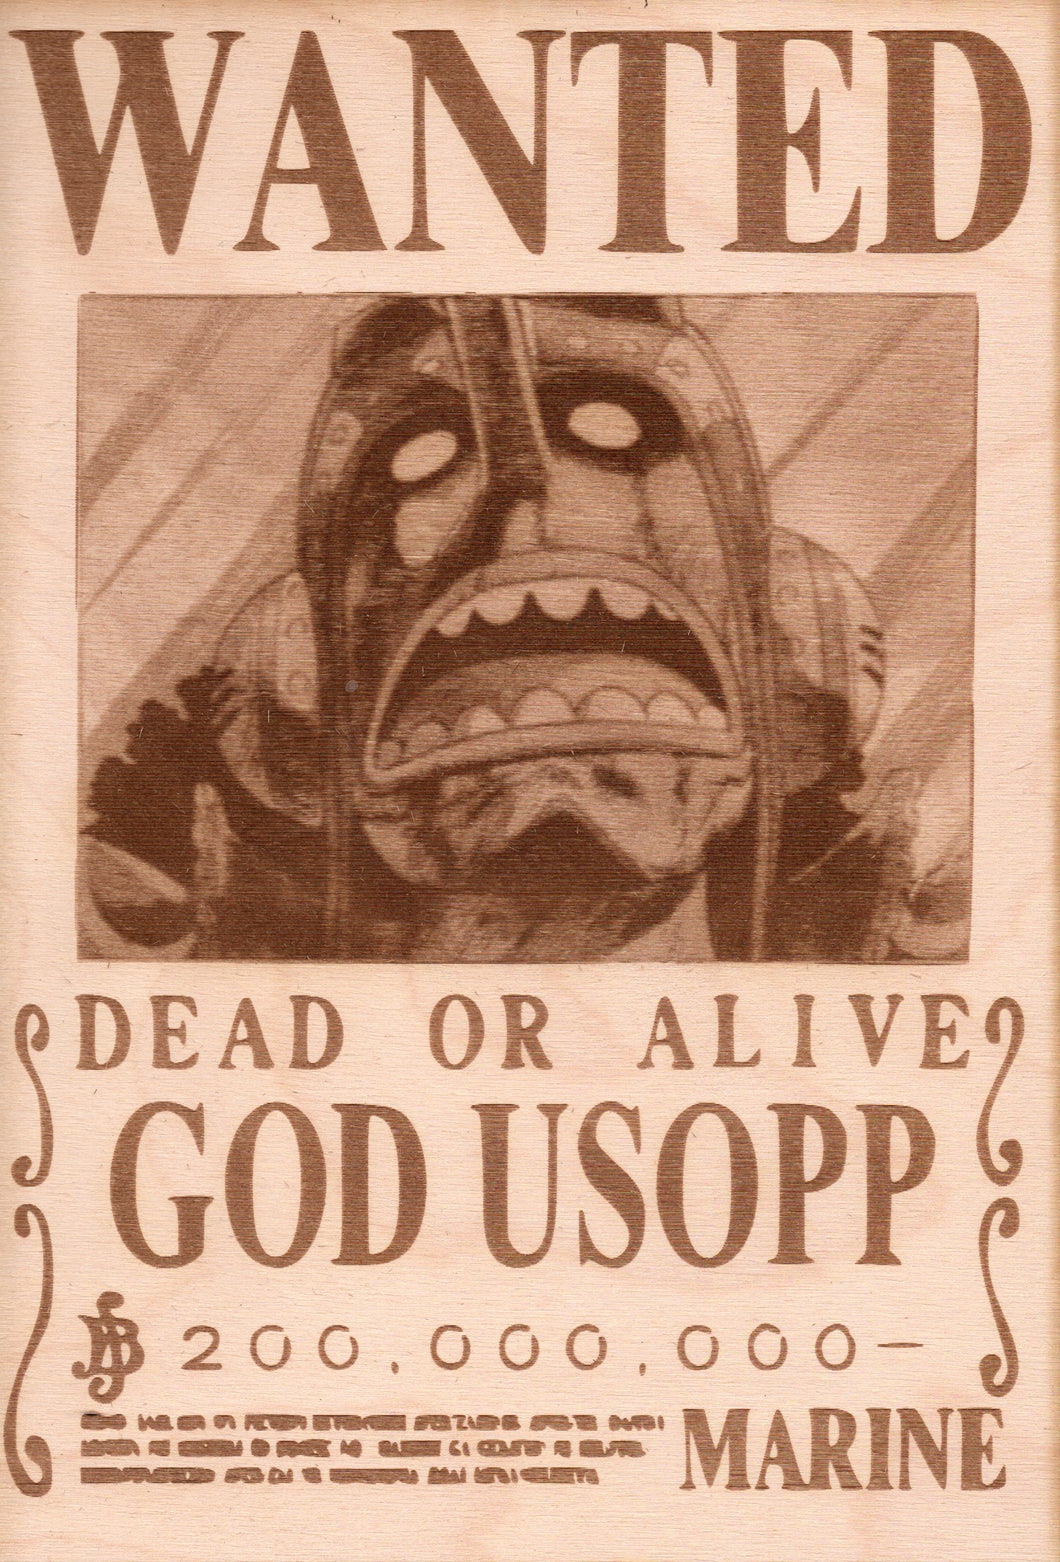 One Piece - God Usopp Wooden Wanted Poster - TantrumCollectibles.com